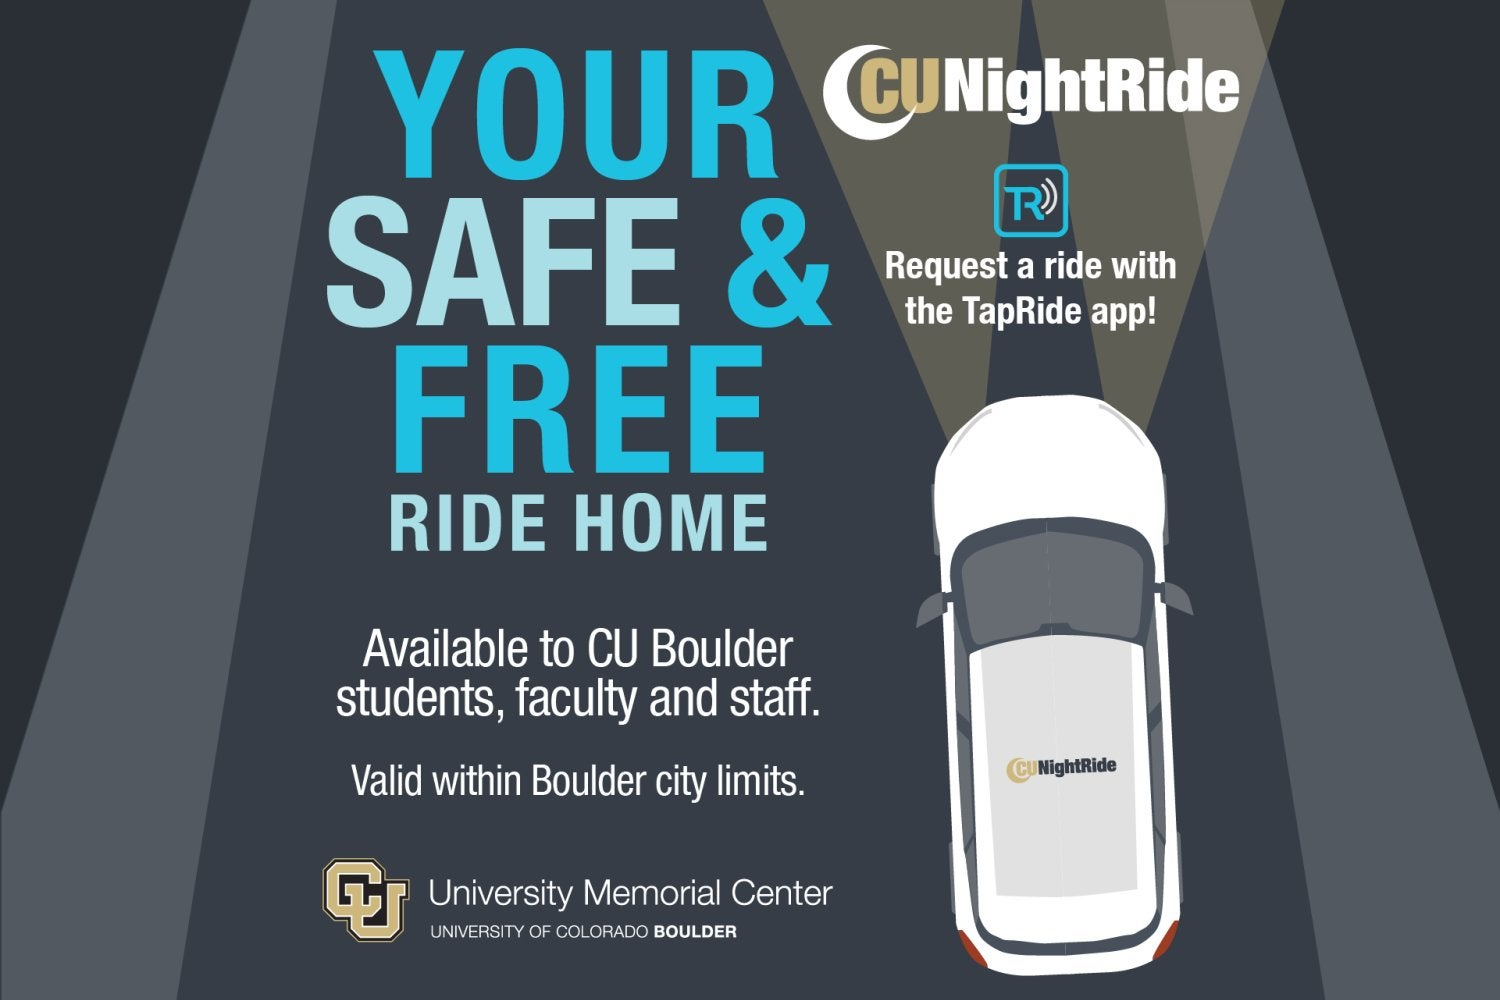 CU NightRide - Your free and safe alternative to walking home after dark